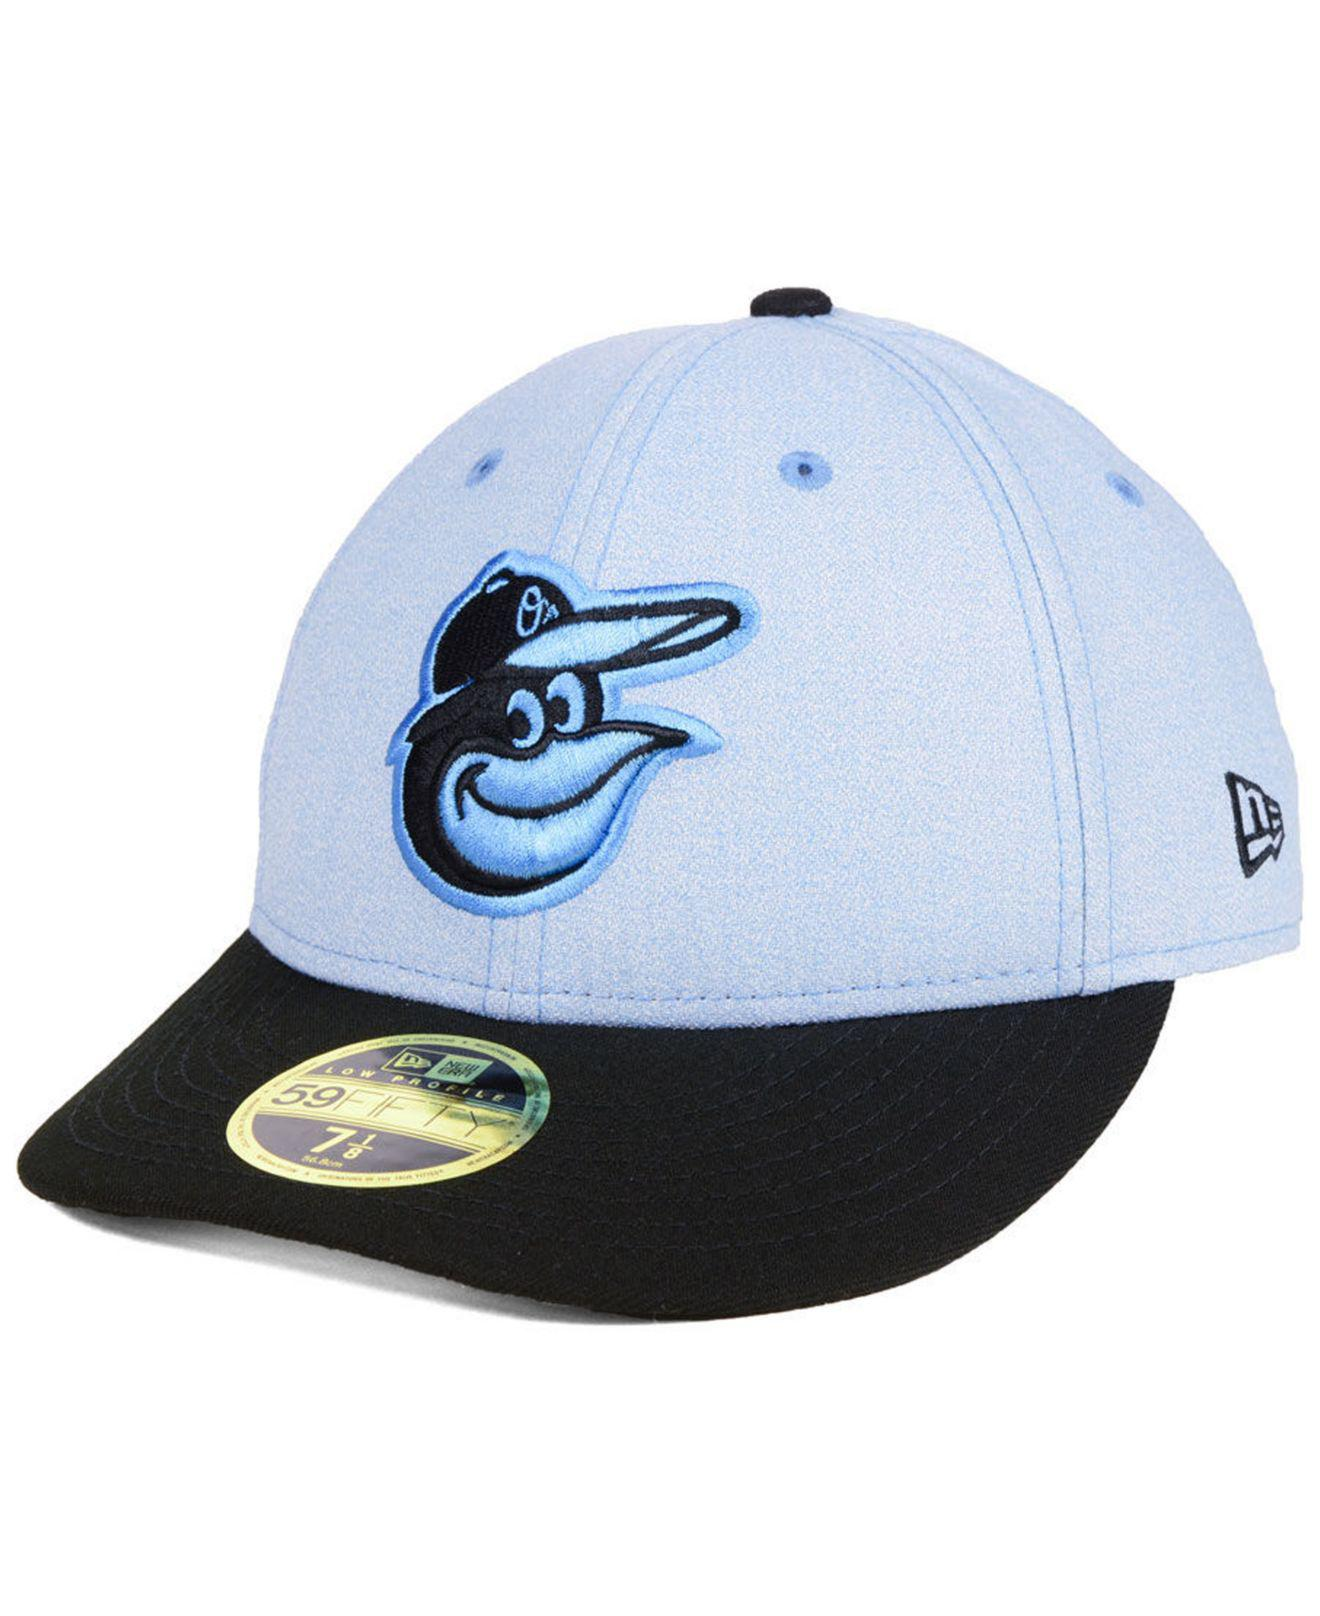 reputable site 6ea42 62557 get baltimore orioles all star game patch low profile 59fifty fitted cap  2018 for. view fullscreen 086c3 4215f  best price ktz. mens blue baltimore  orioles ...